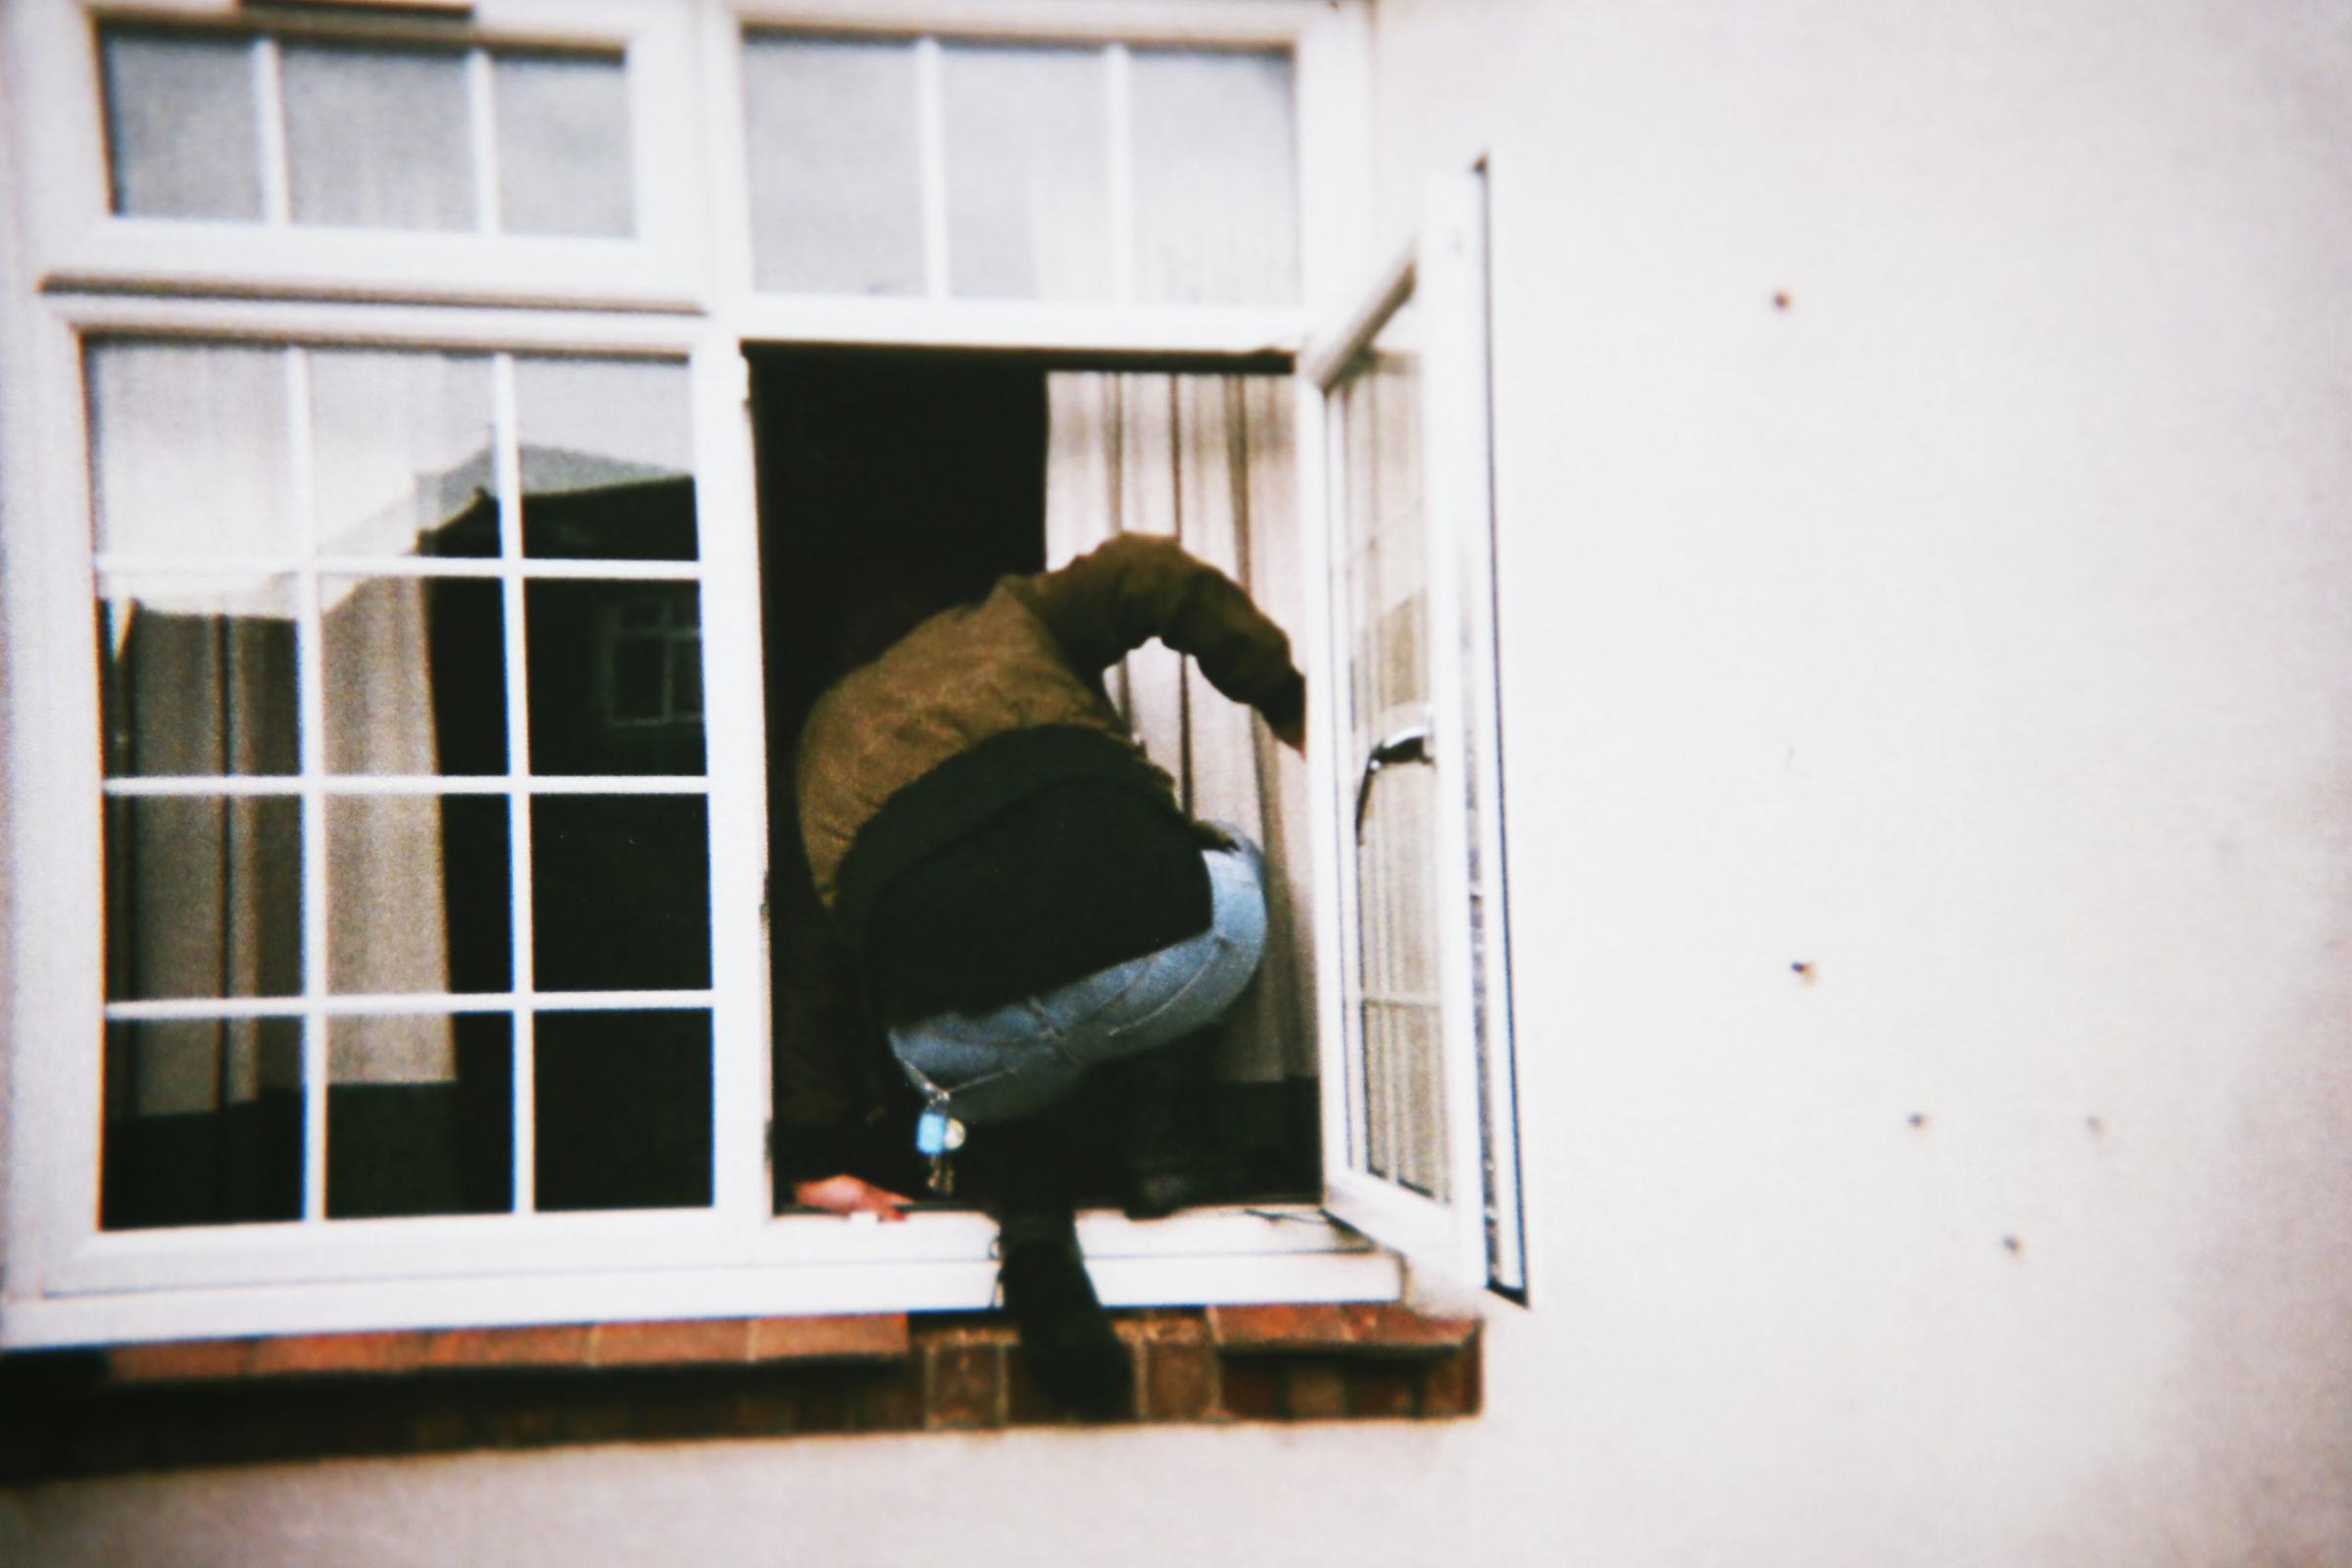 Homeless people given disposable cameras - these are the pictures they took